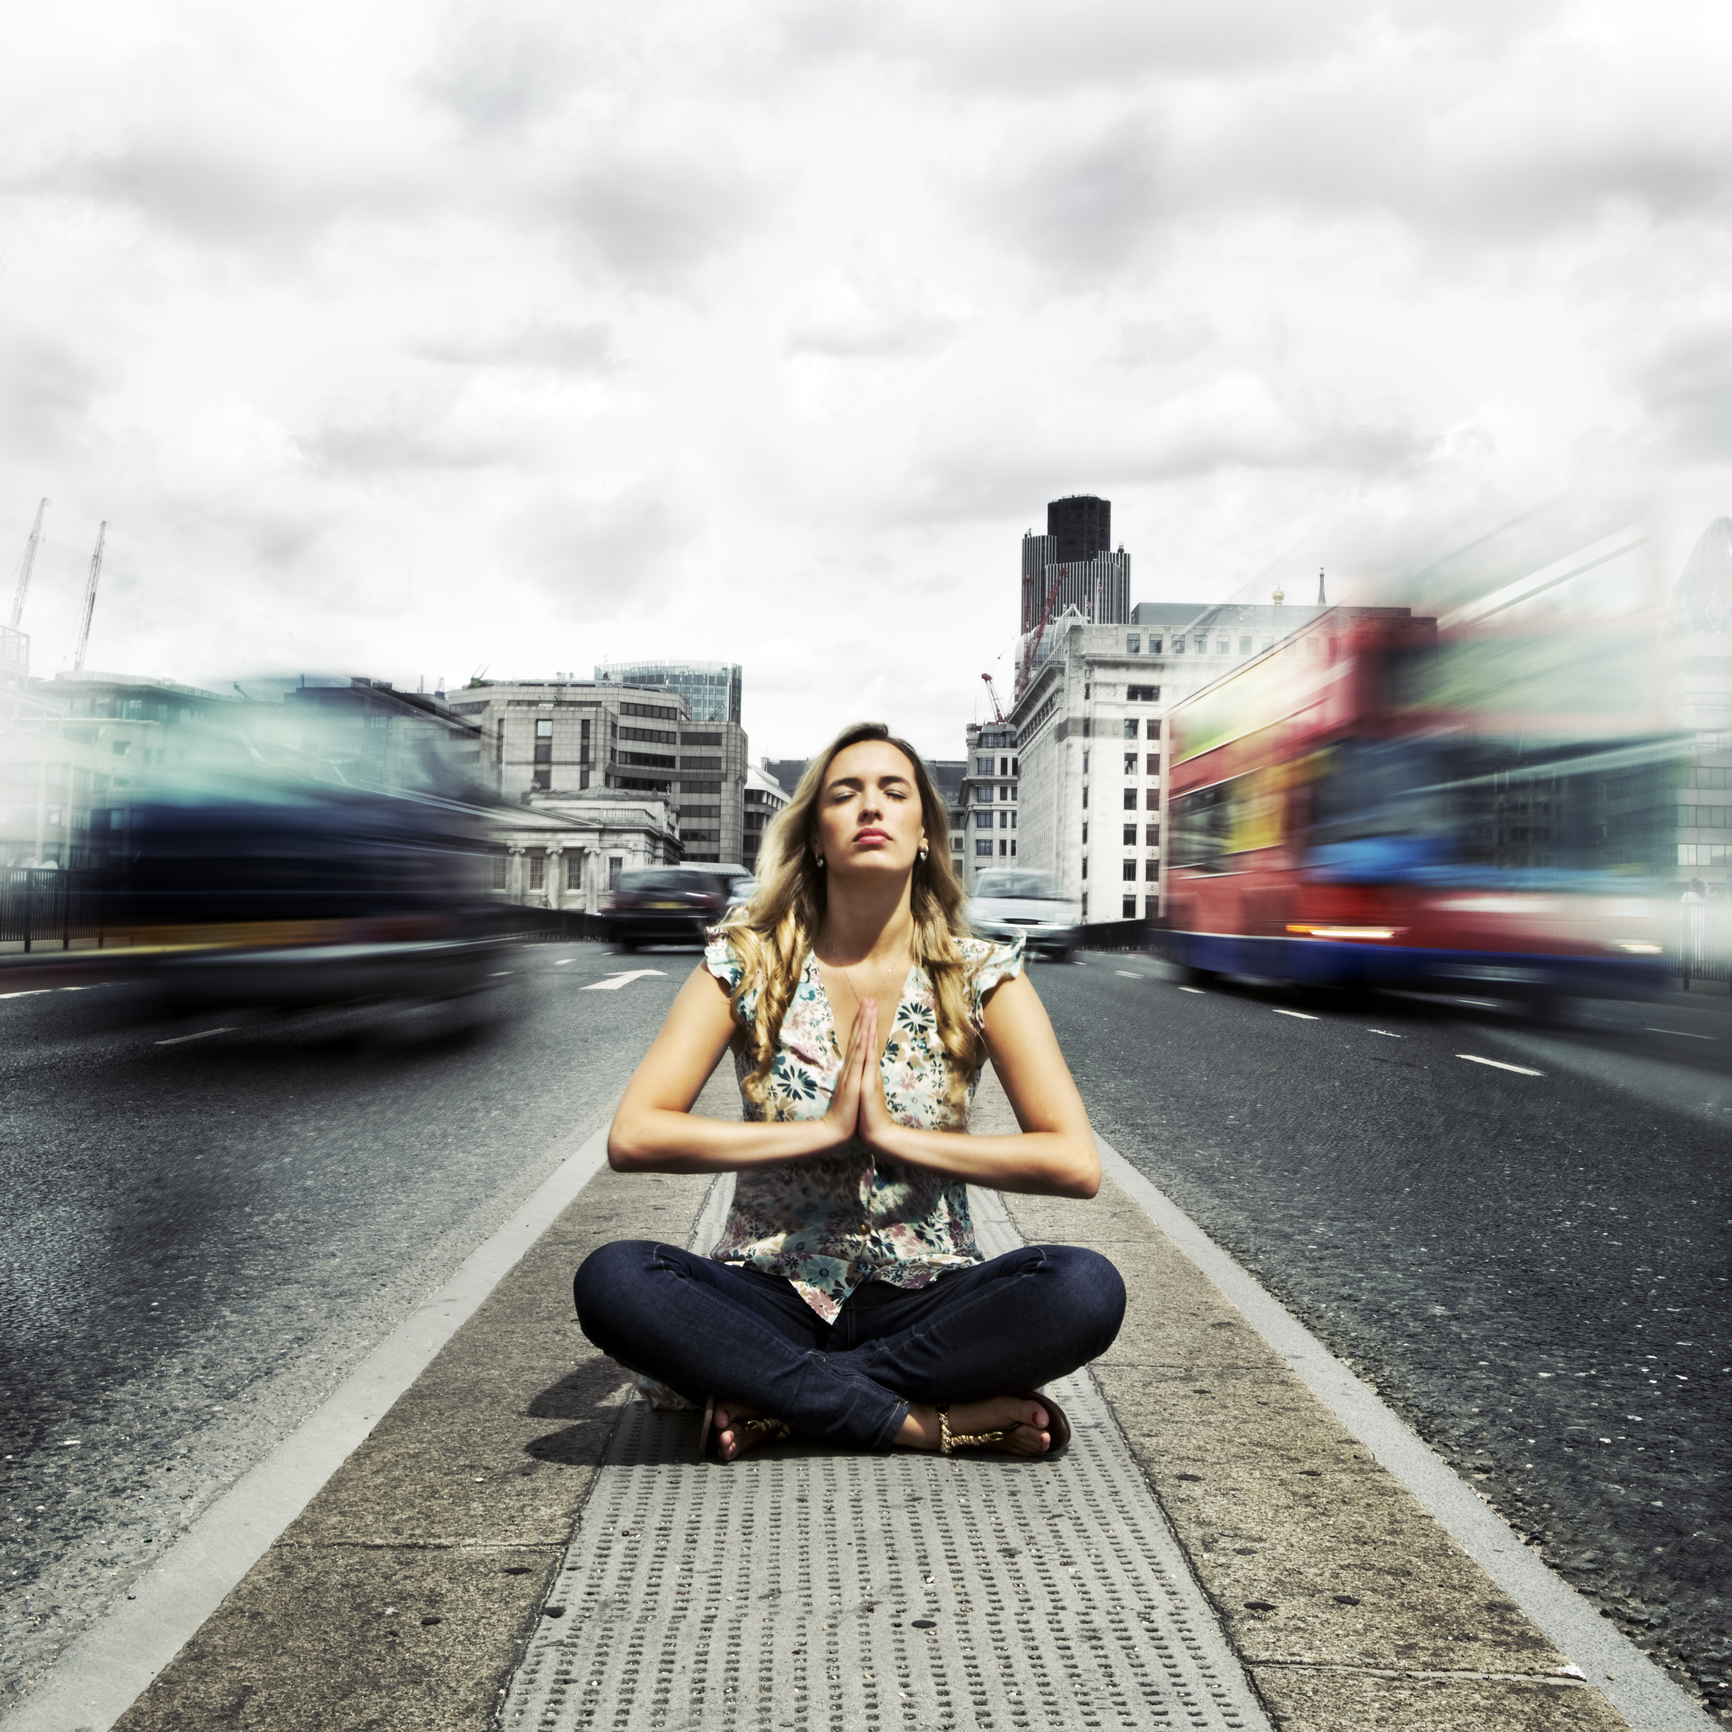 Is There Value In Distracted Praying? Are We Ever Not Distracted?